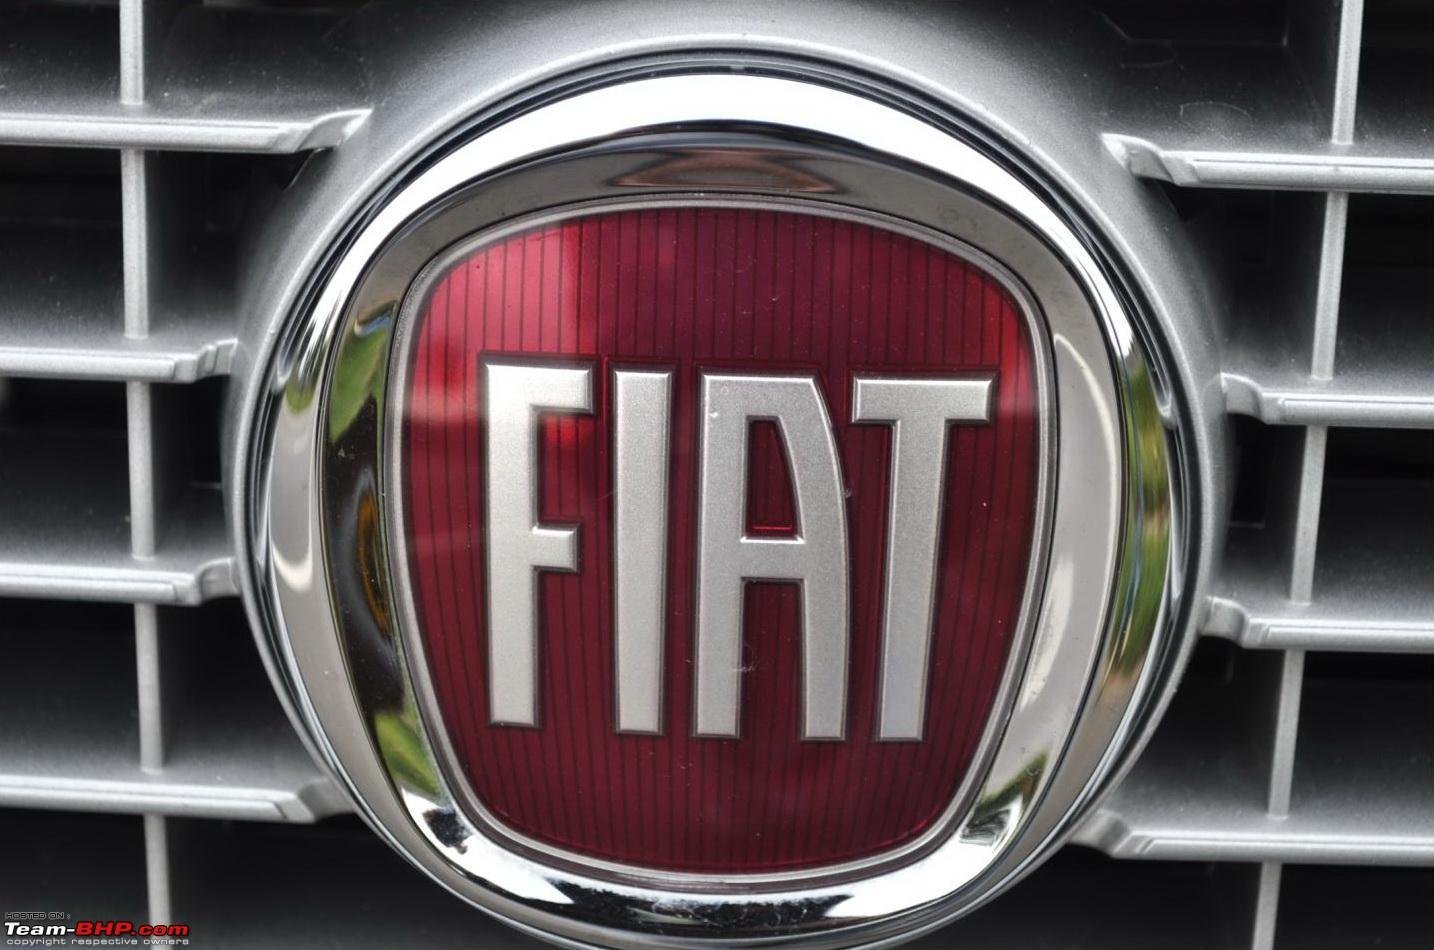 Fiat Global Performance